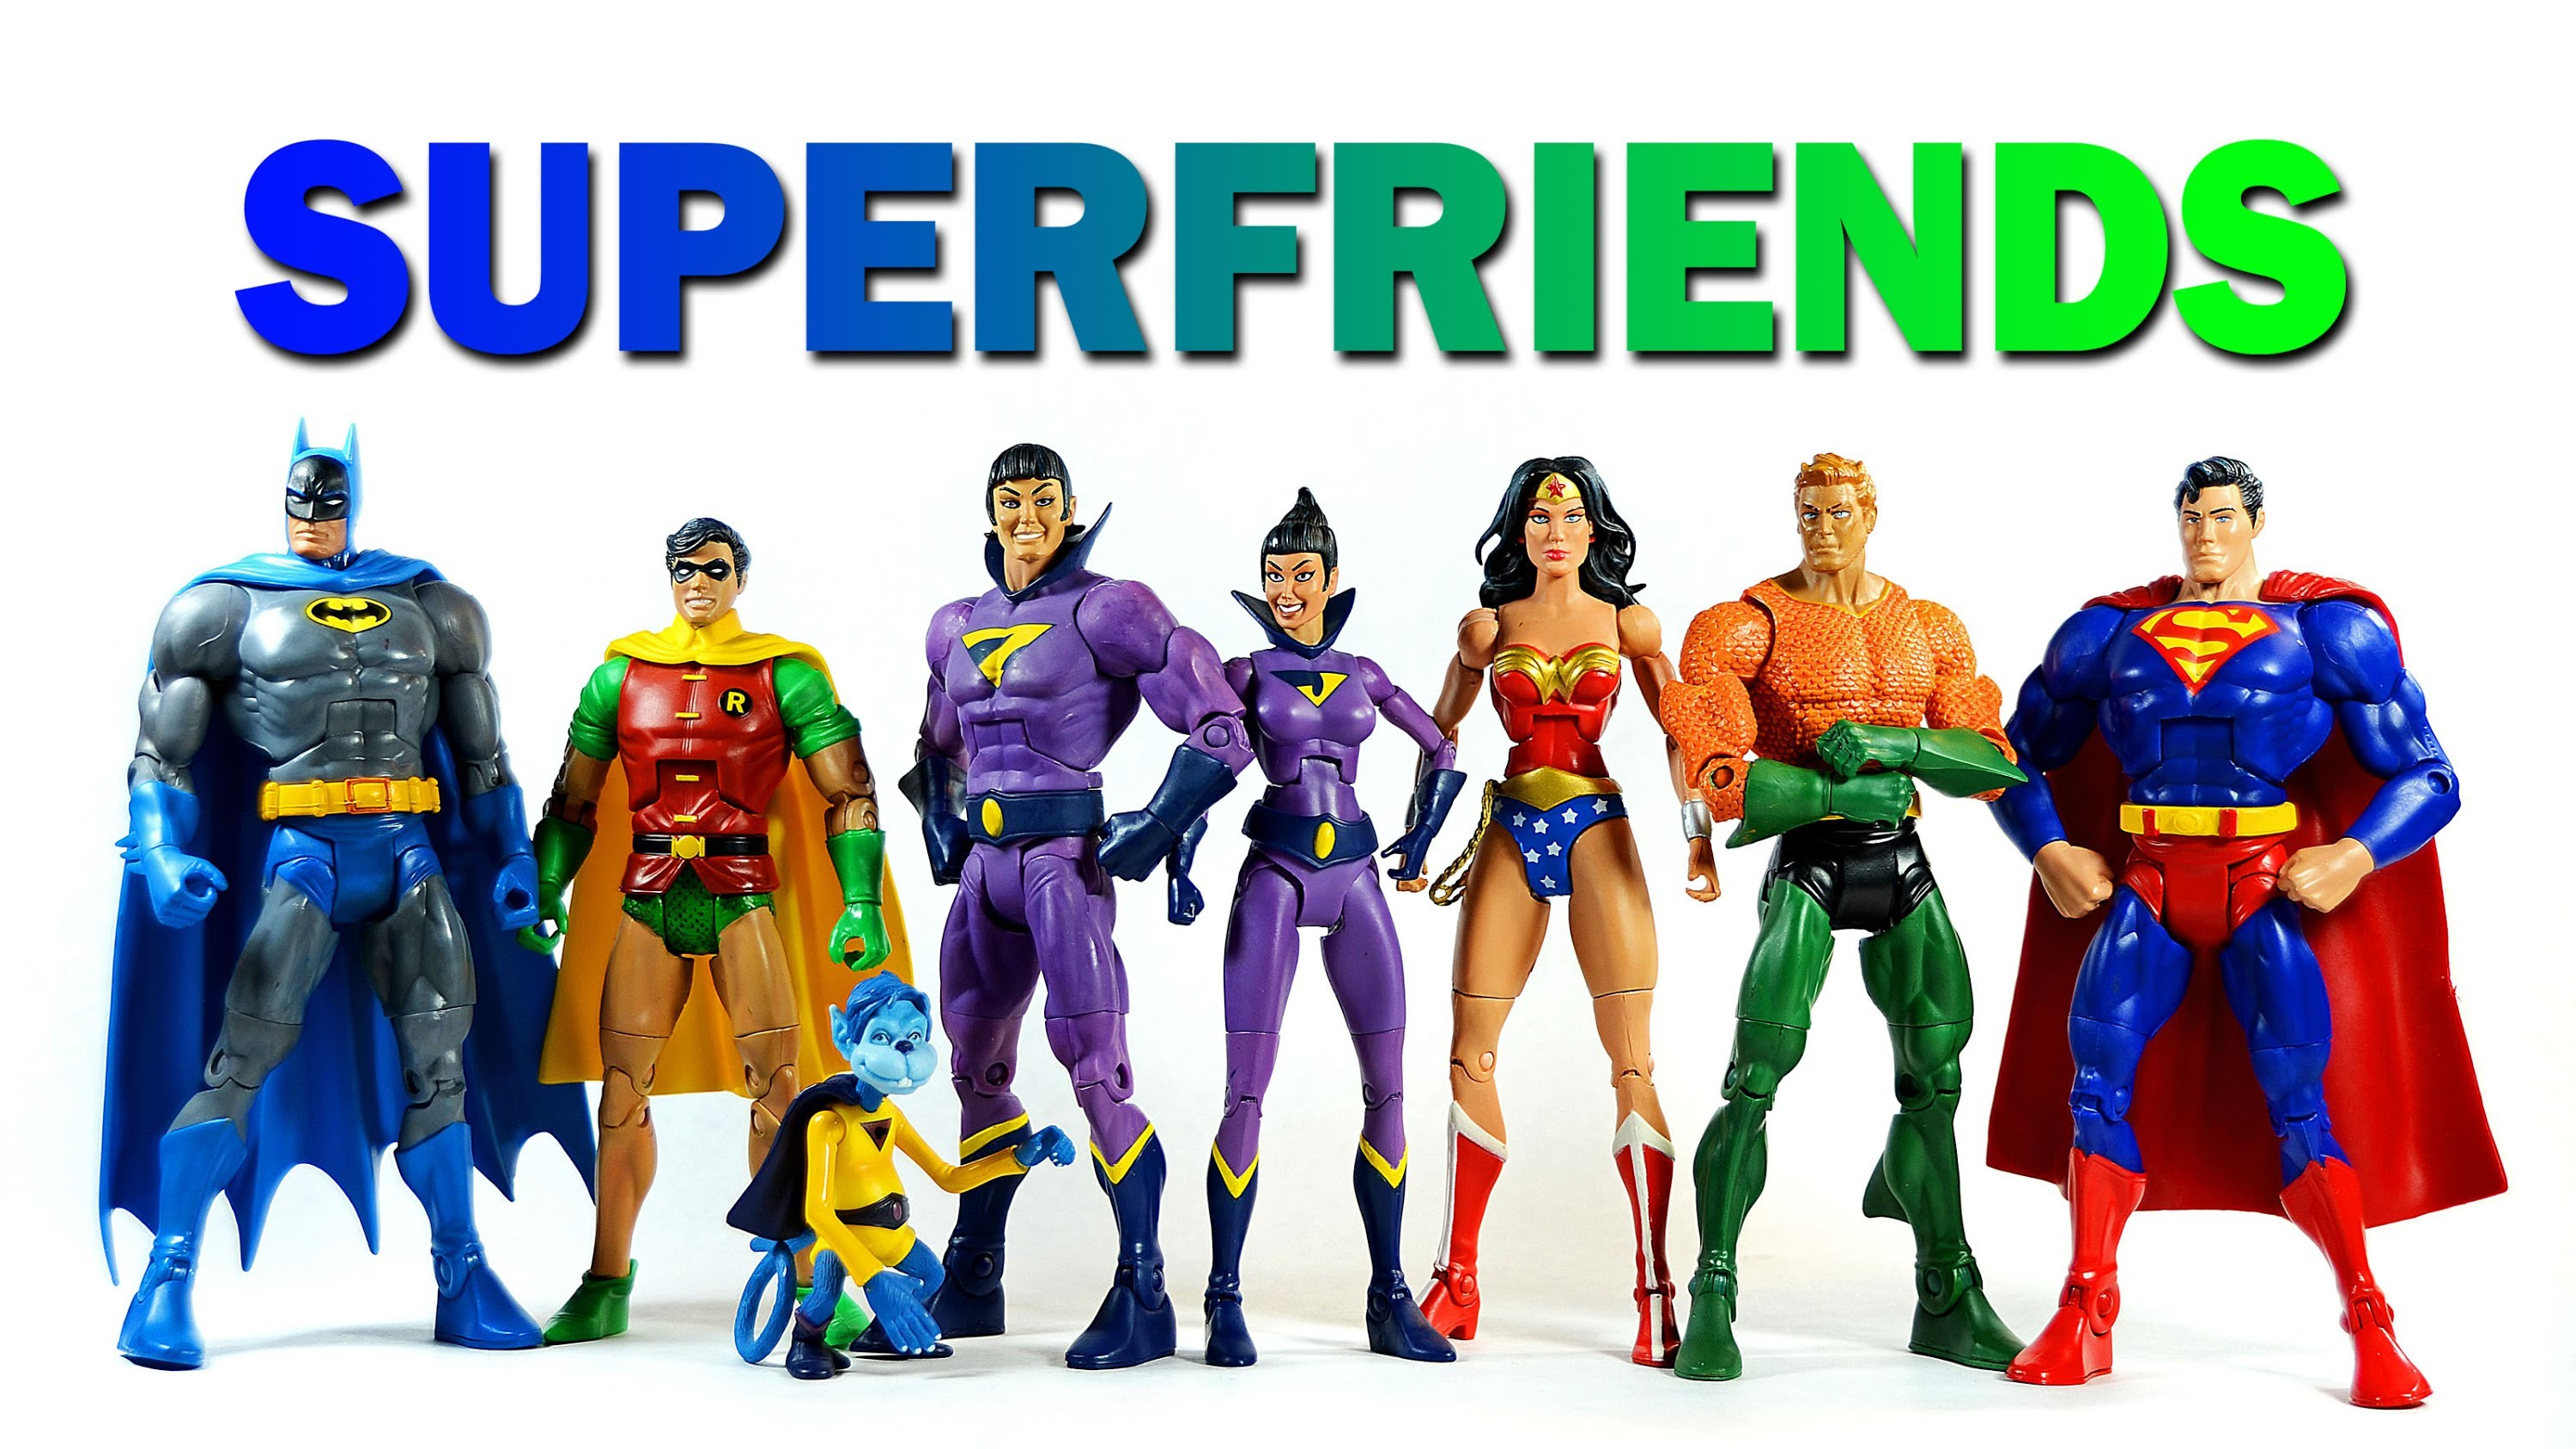 3000x1688 > Super Friends Wallpapers